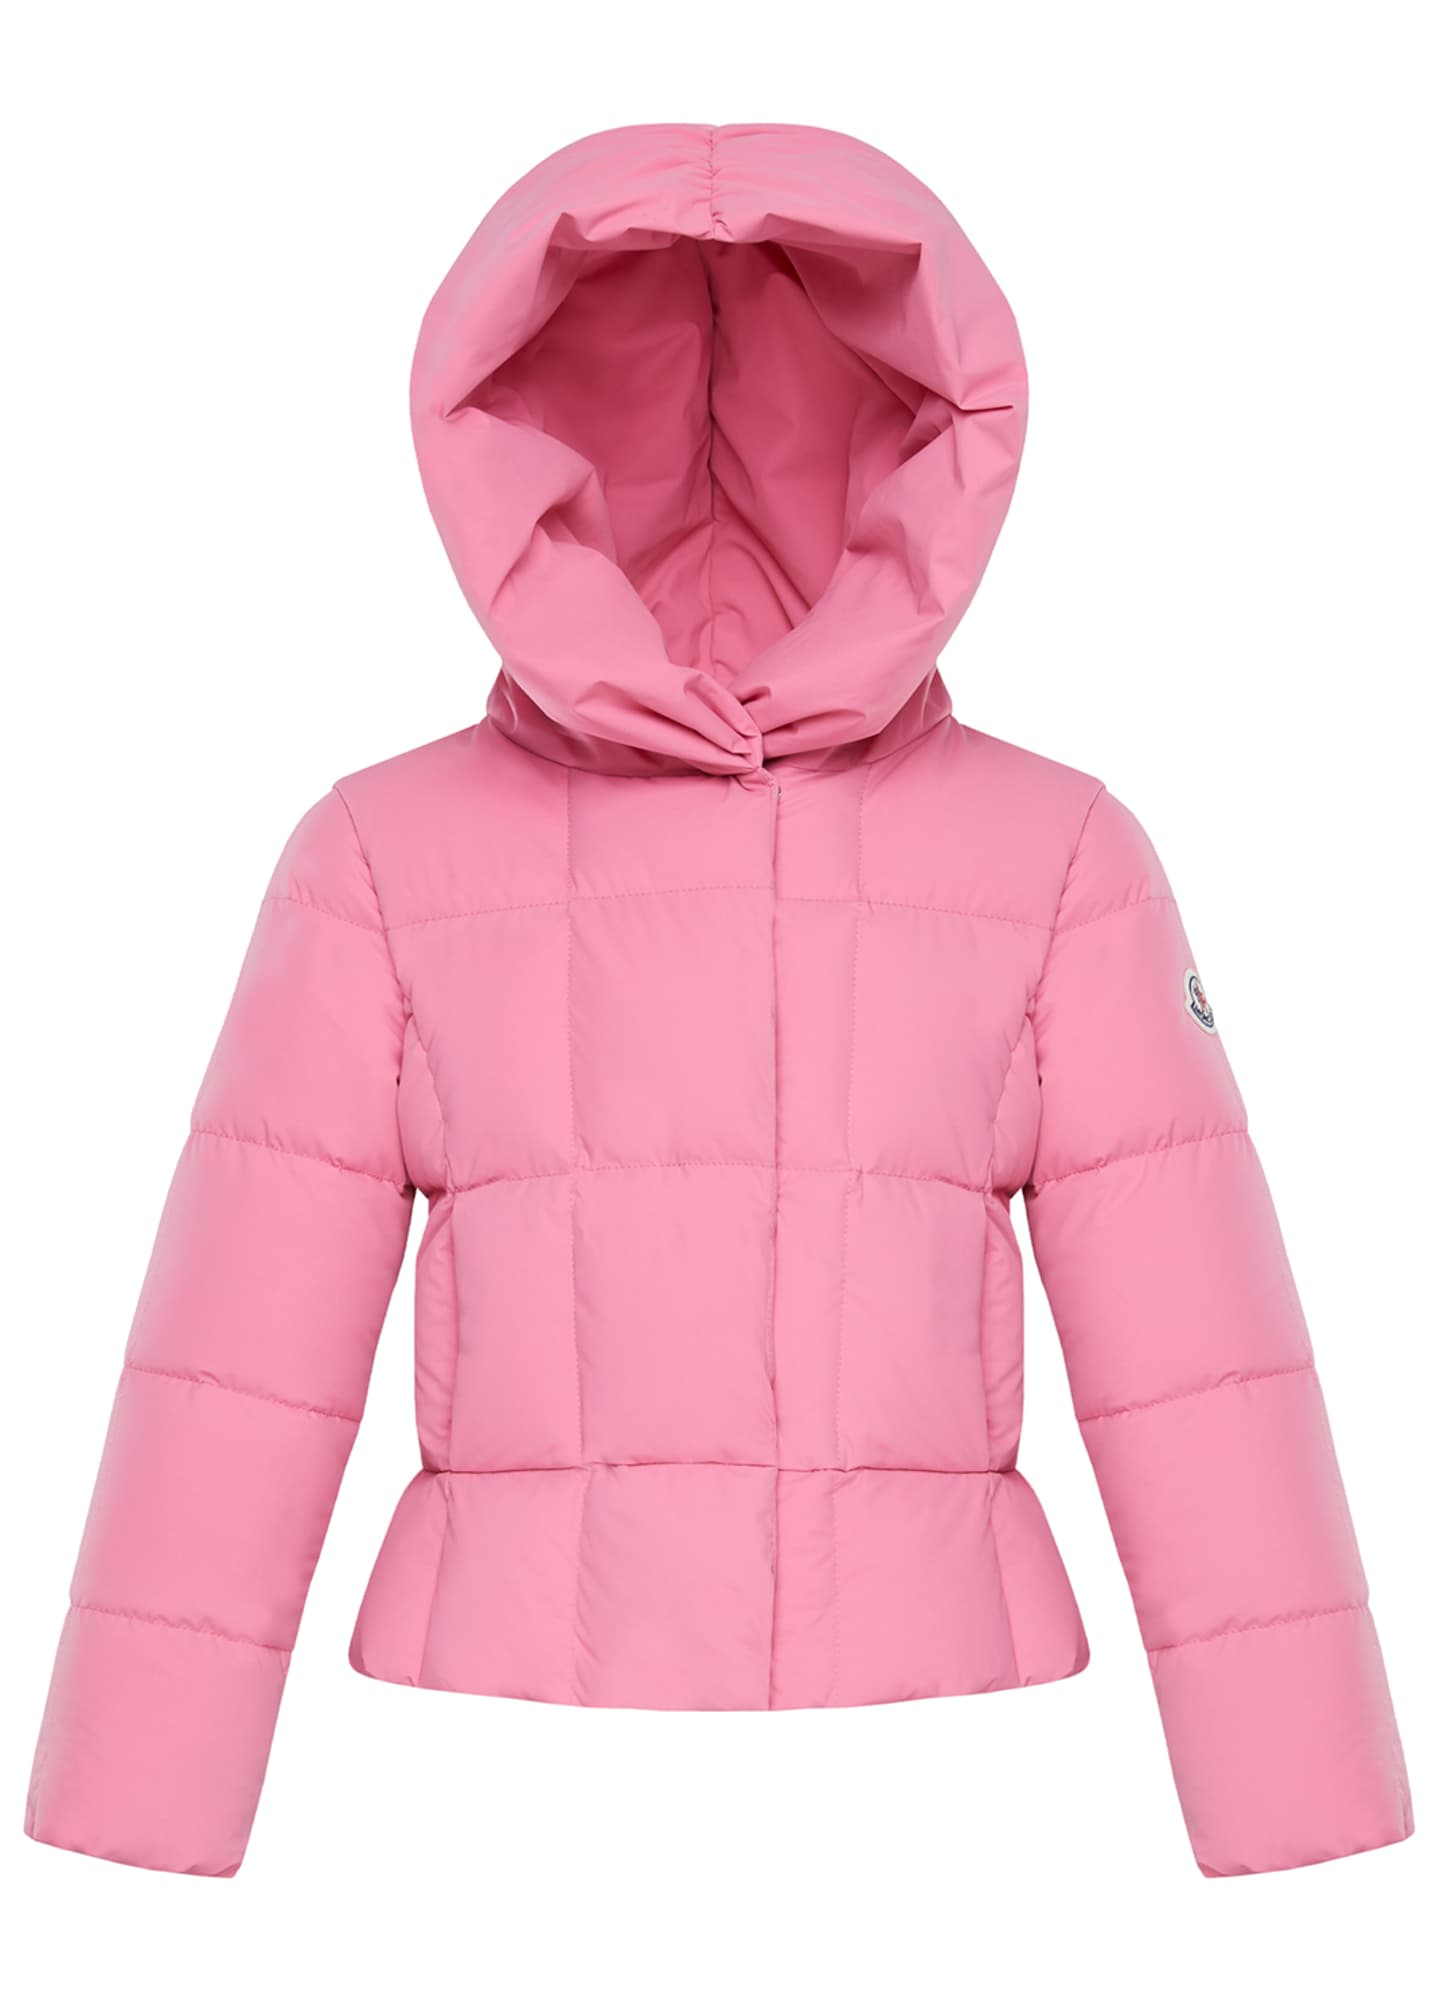 Moncler Girl's Giroflee Stretch Tech Hooded Jacket, Size